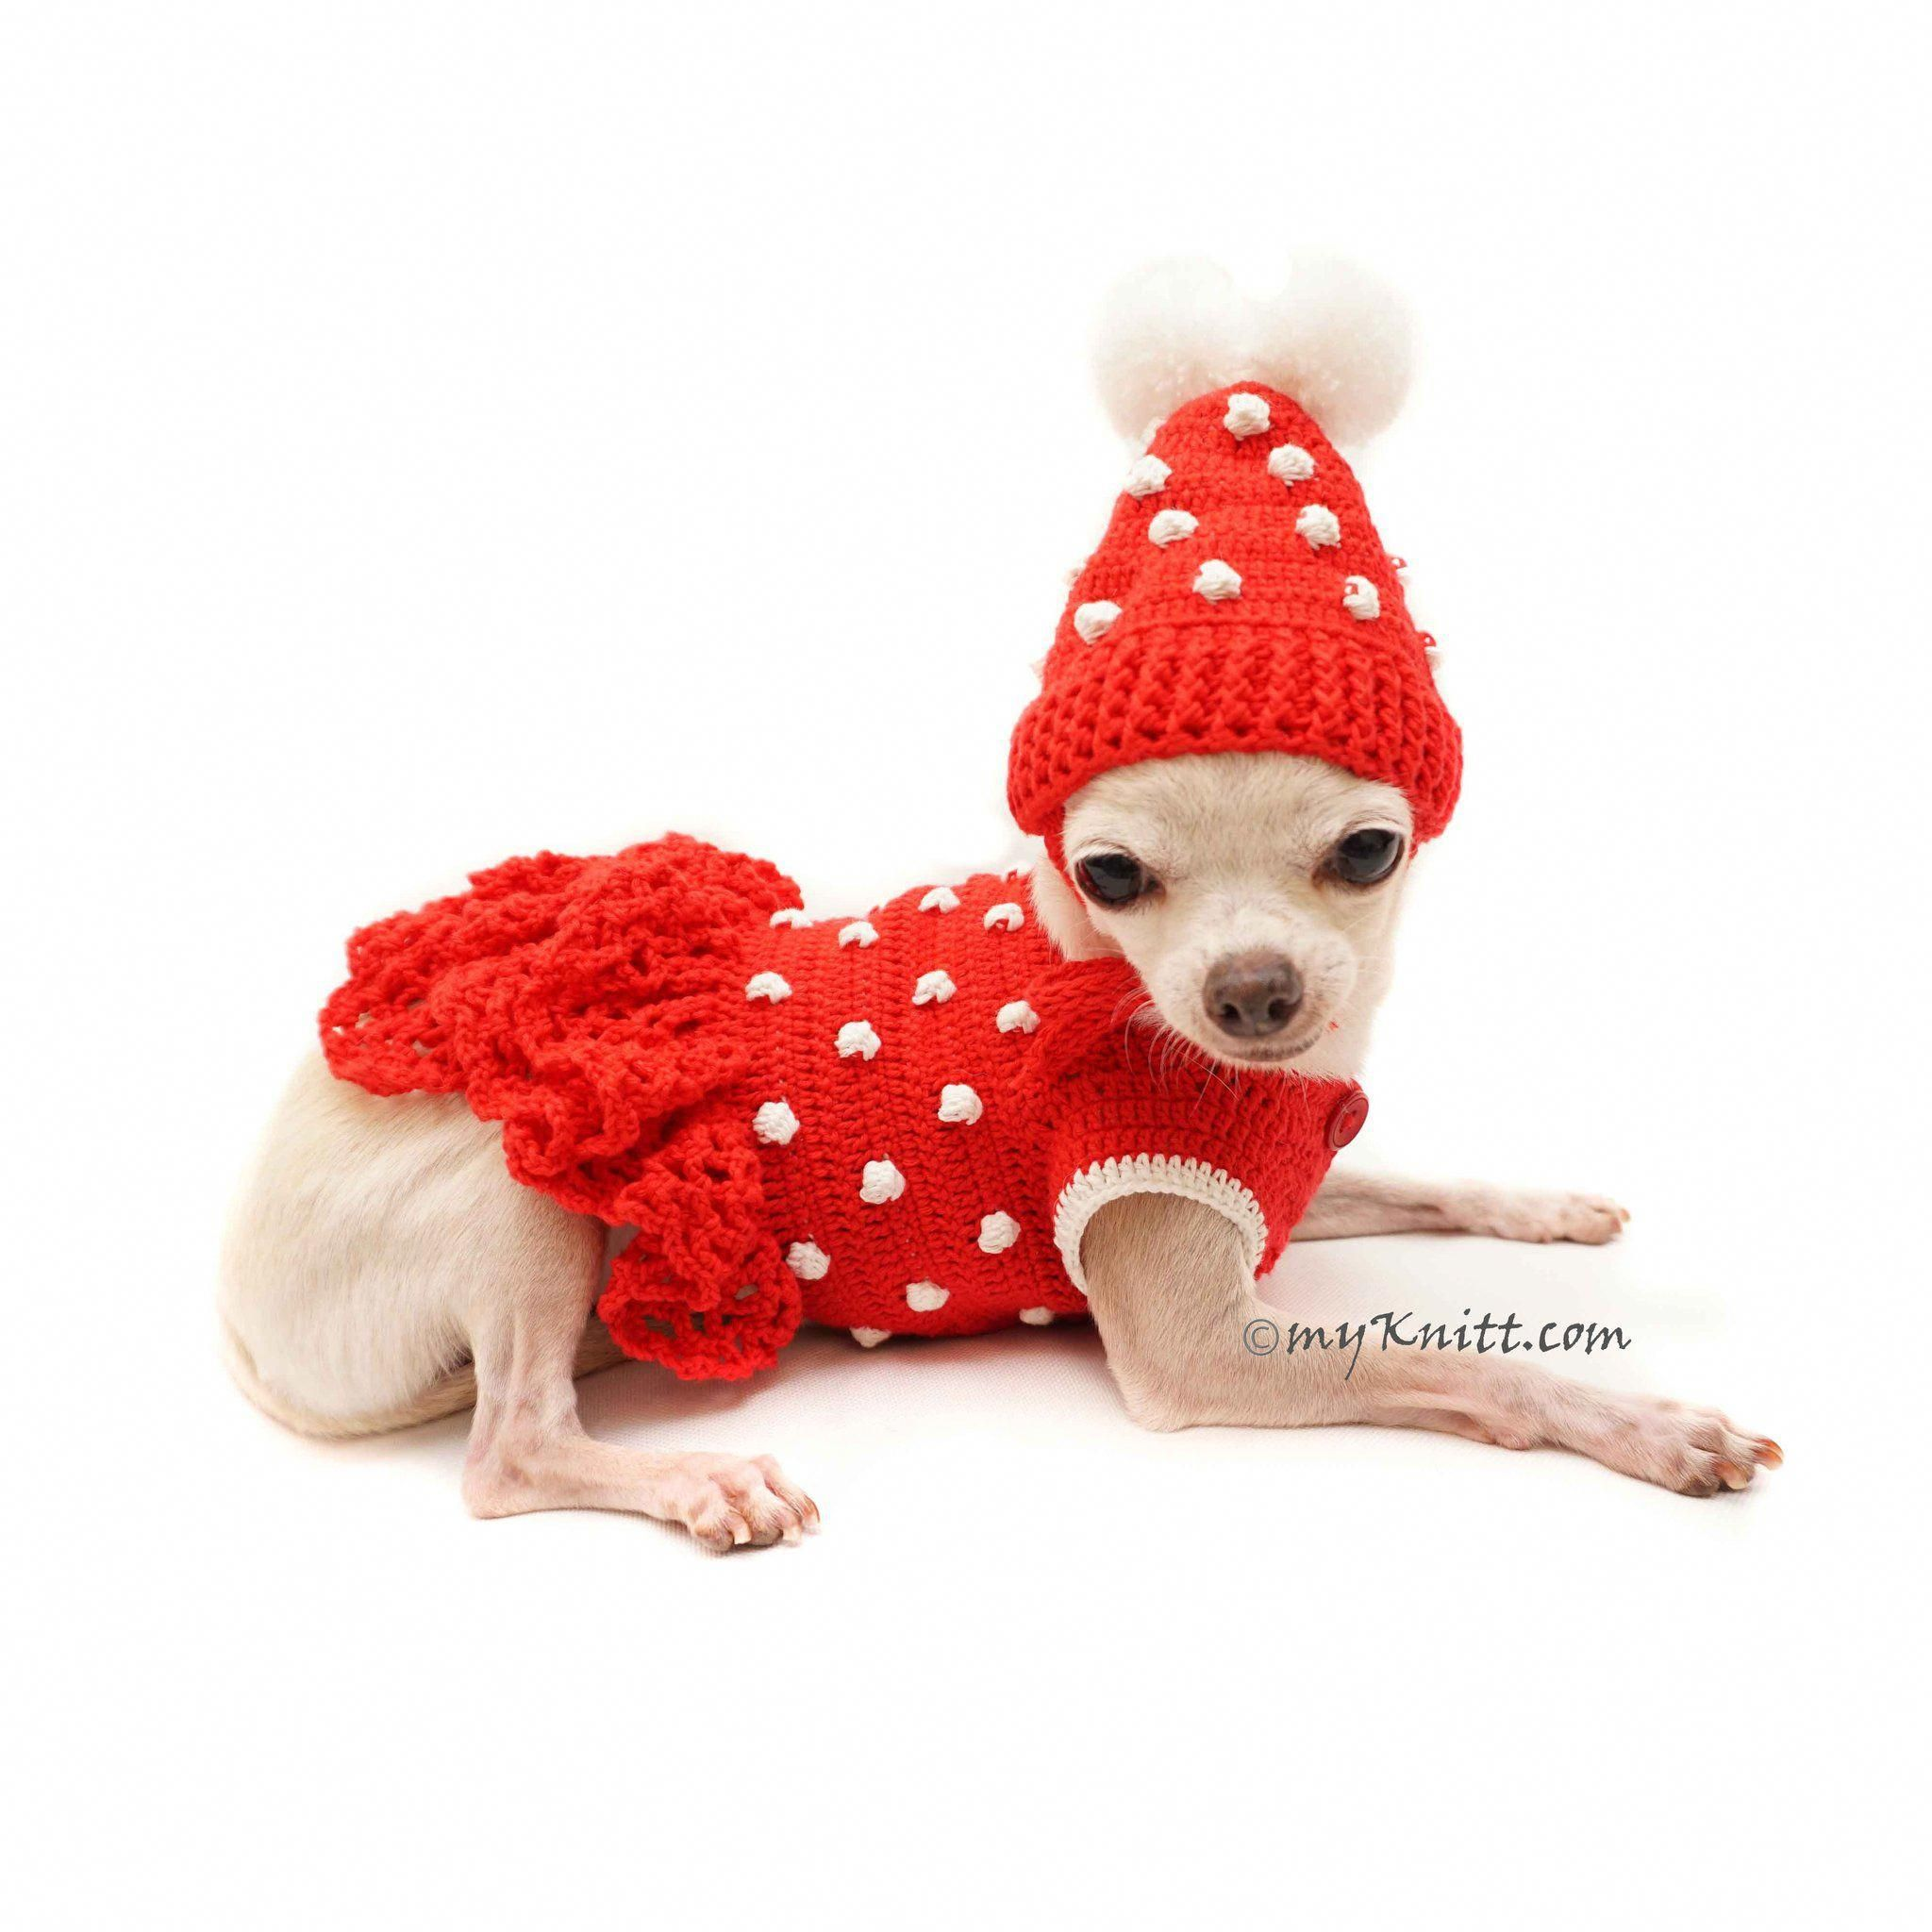 Dog Clothes Big Dogs #dogstagram #DogClothes